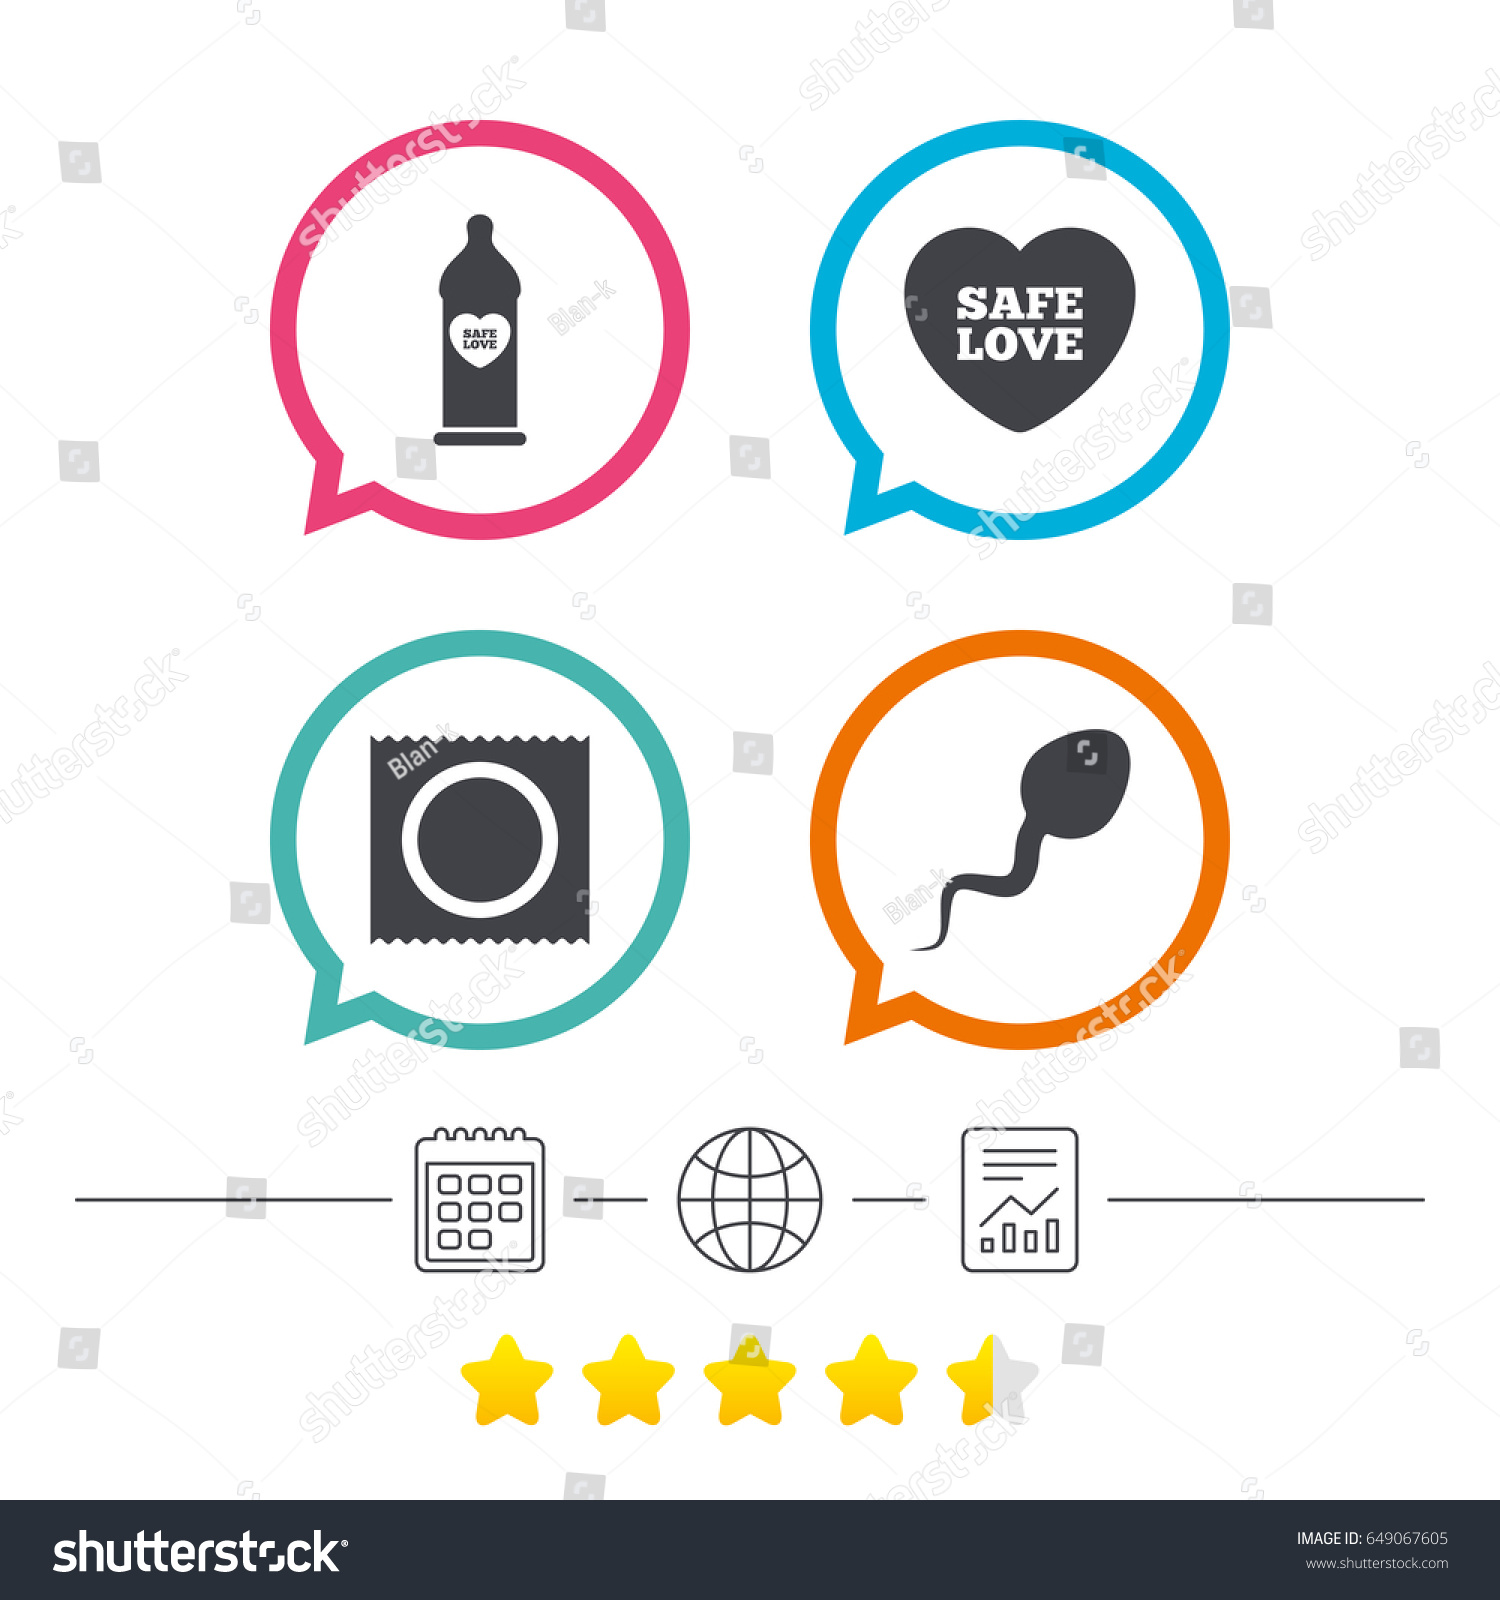 Safe sex love icons condom package stock vector 649067605 safe sex love icons condom in package symbol sperm sign fertilization or insemination buycottarizona